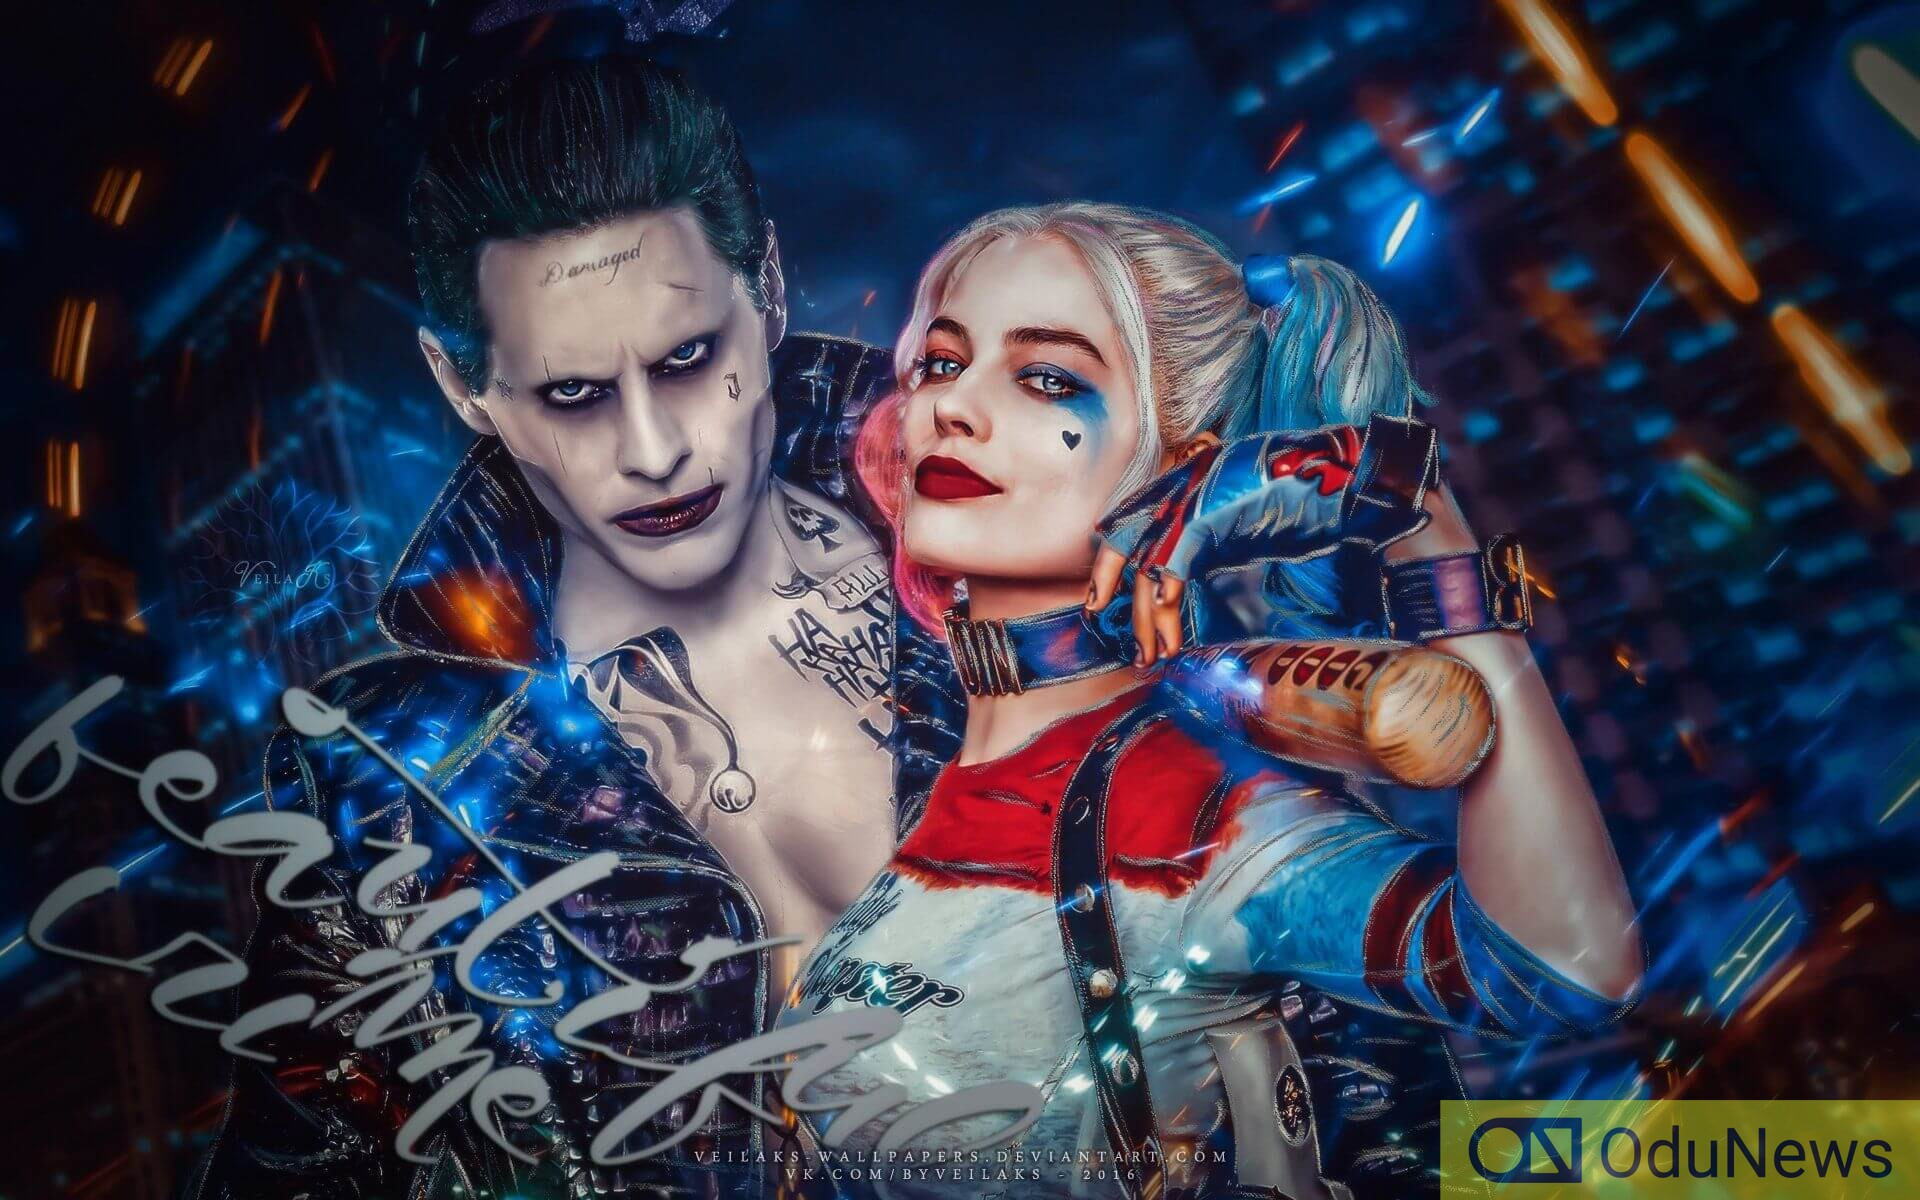 Harley Quinn and Joker were an item in SUICIDE SQUAD